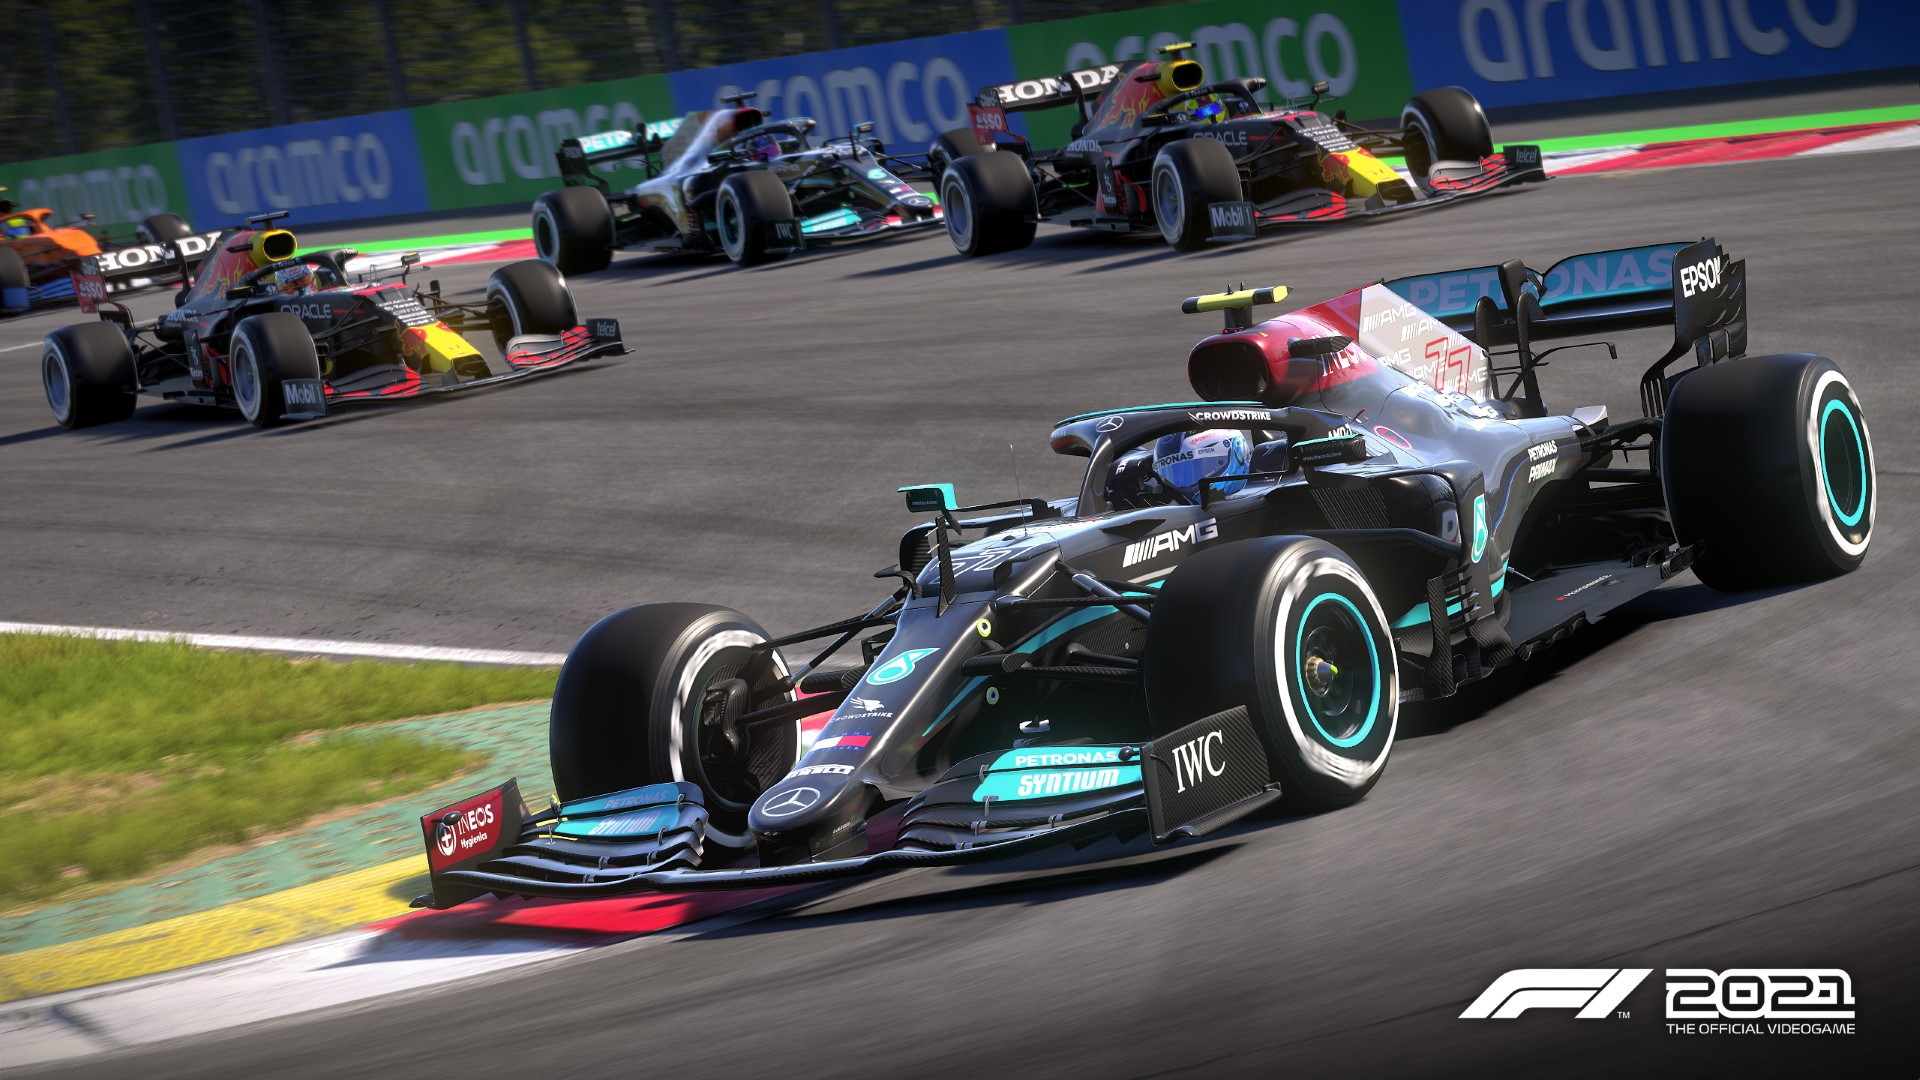 A screenshot from the F1 2021 game